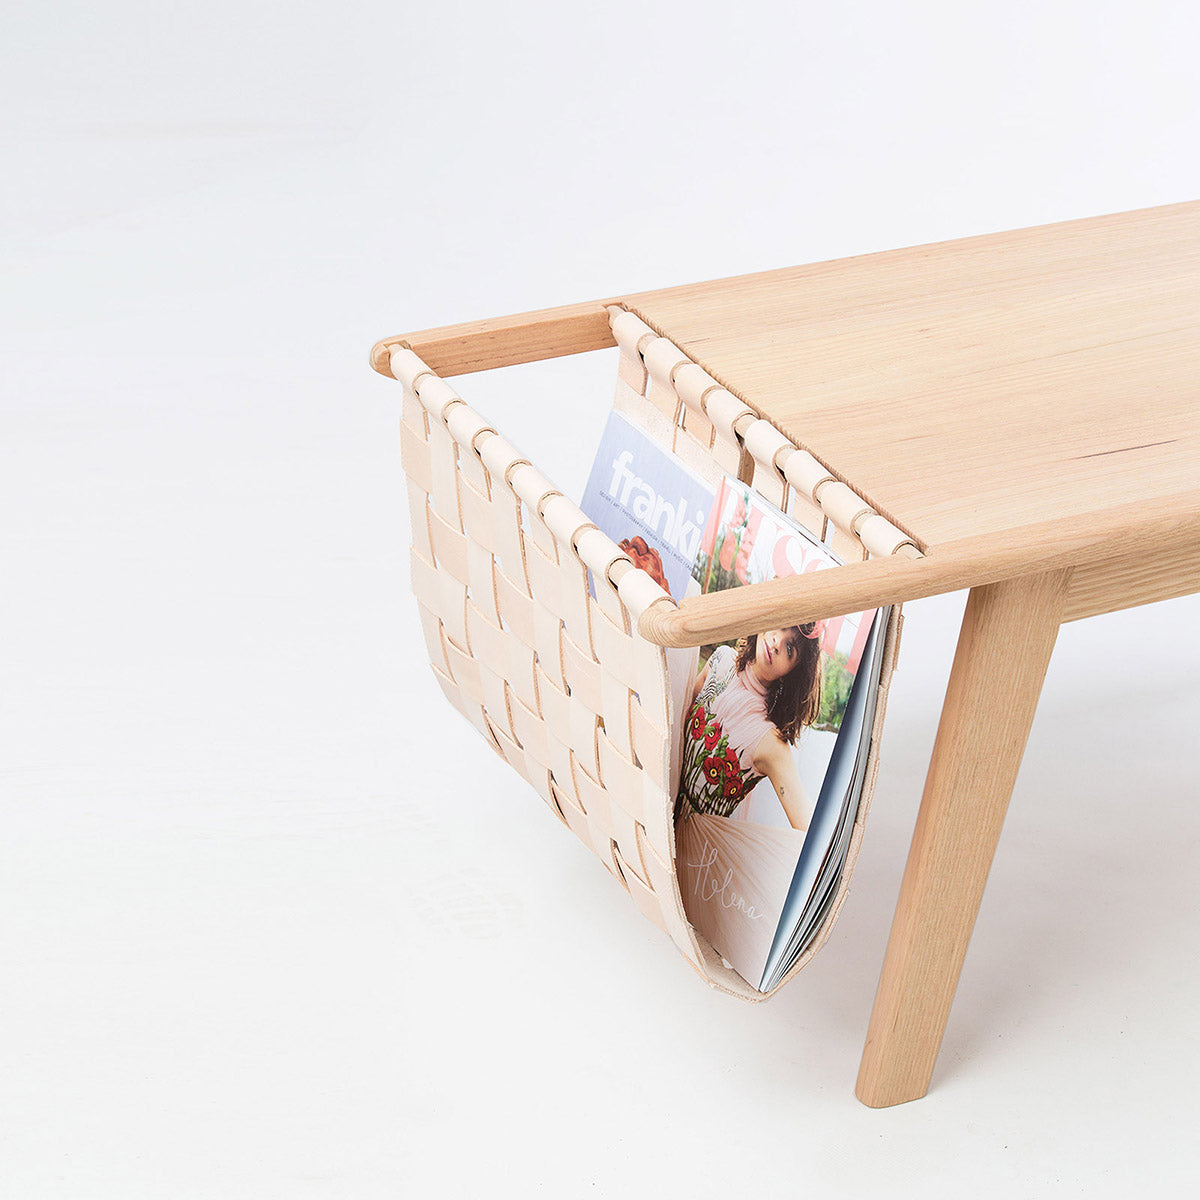 Coffee table with built in magazine holder.